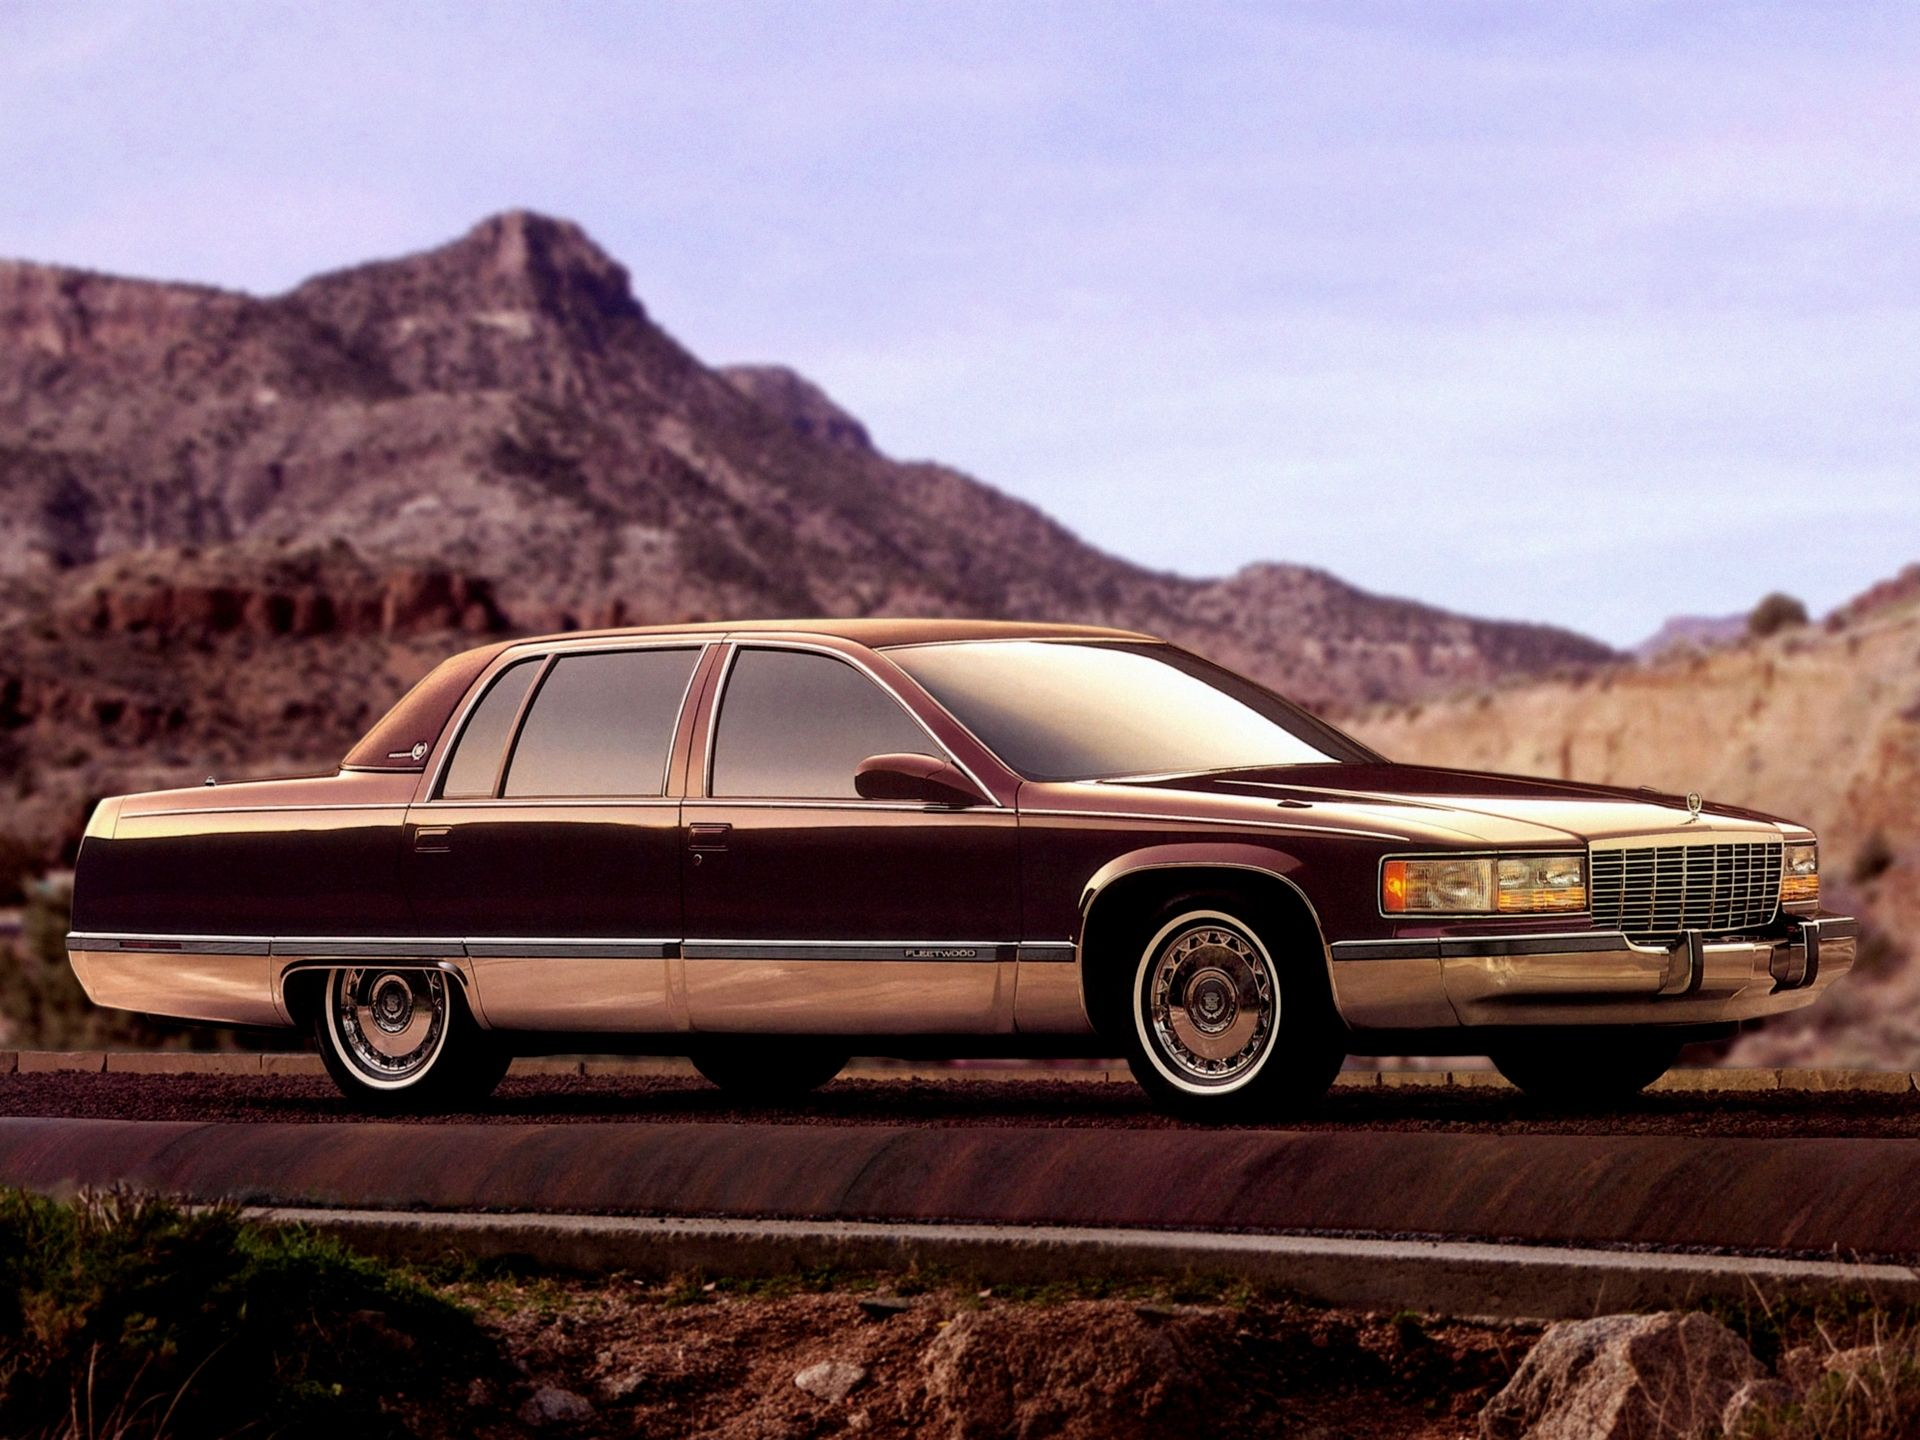 1996 Cadillac Fleetwood Brougham Maintenance/restoration of old/vintage  vehicles: the material for new cogs/casters/gears/pads could be cast  polyamide which ...